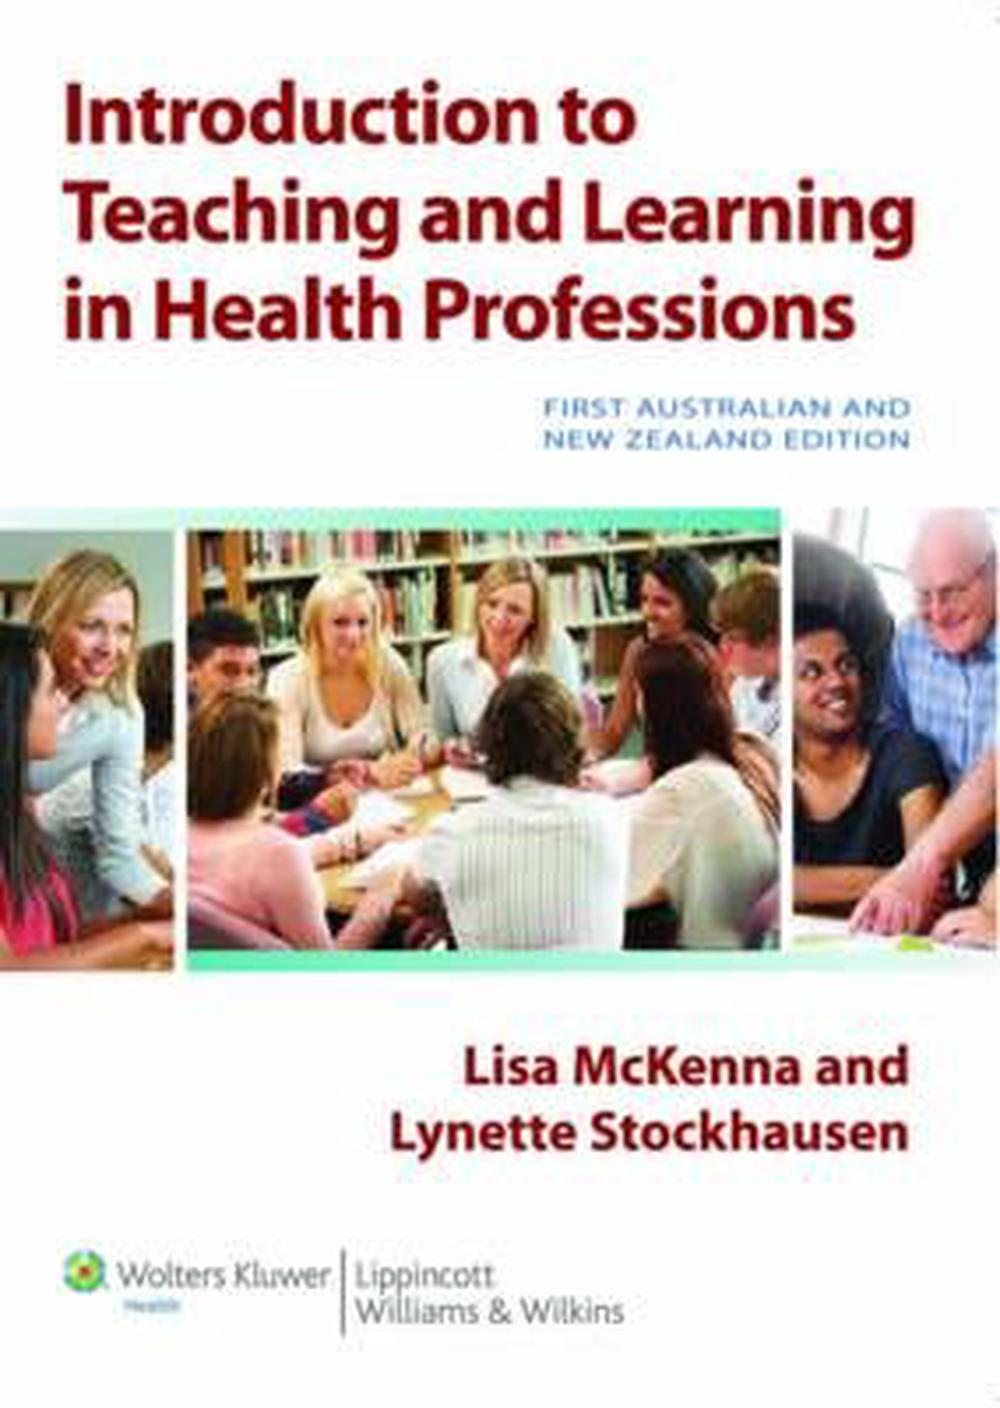 Introduction to Teaching in the Health Professions